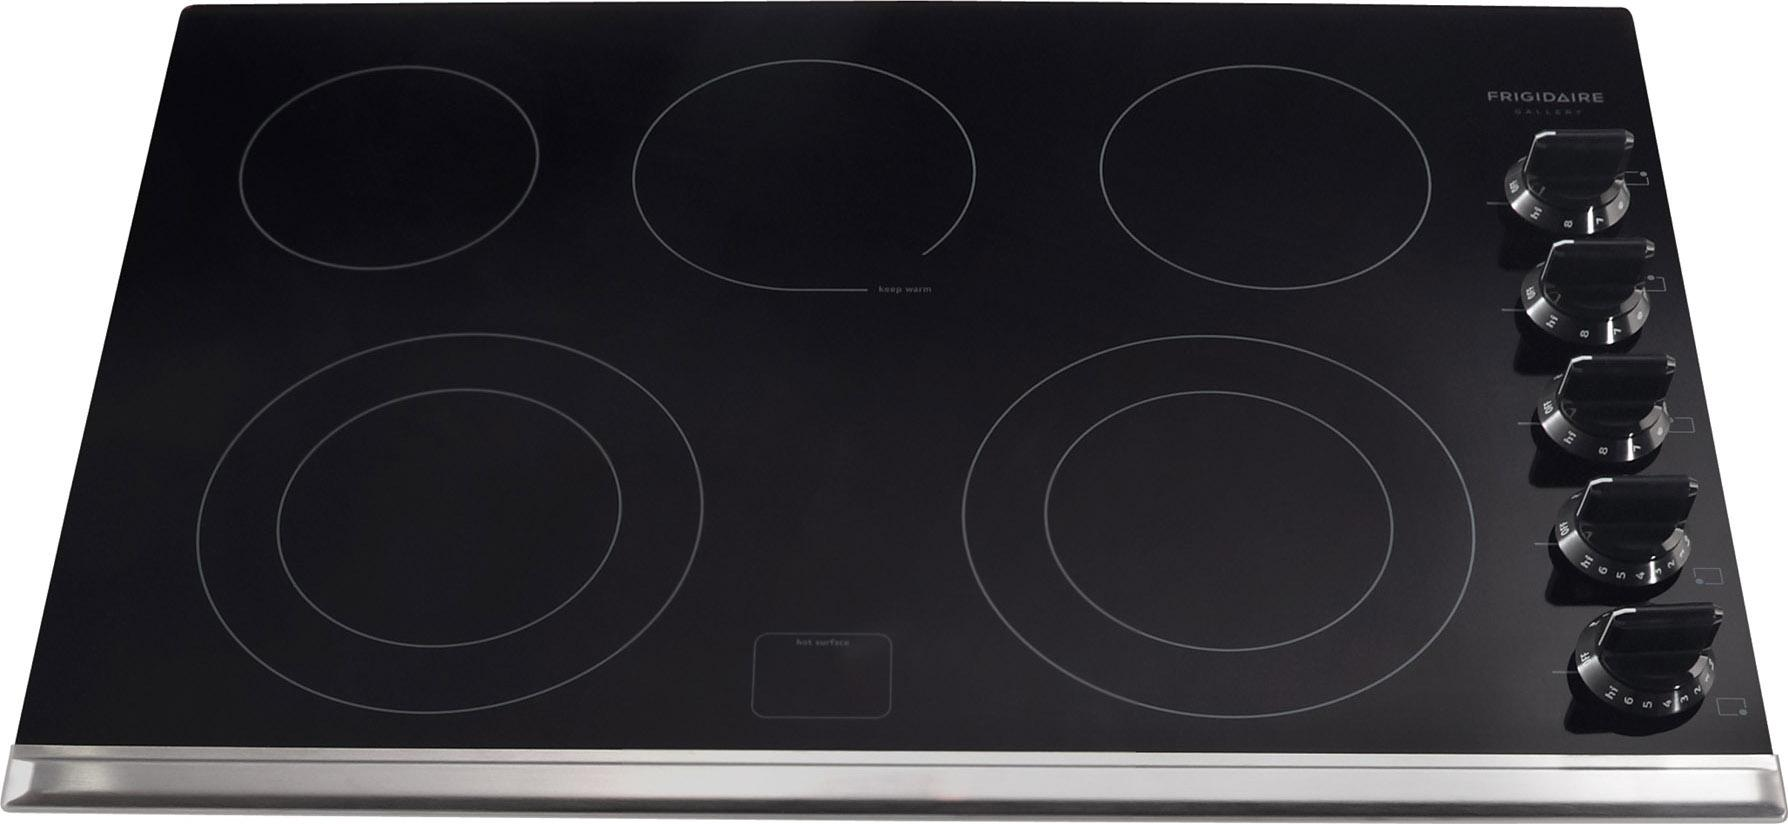 """Frigidaire Frigidaire Gallery Electric Cooktops 30"""" Built-In Electric Cooktop - Item Number: FGEC3067MB"""